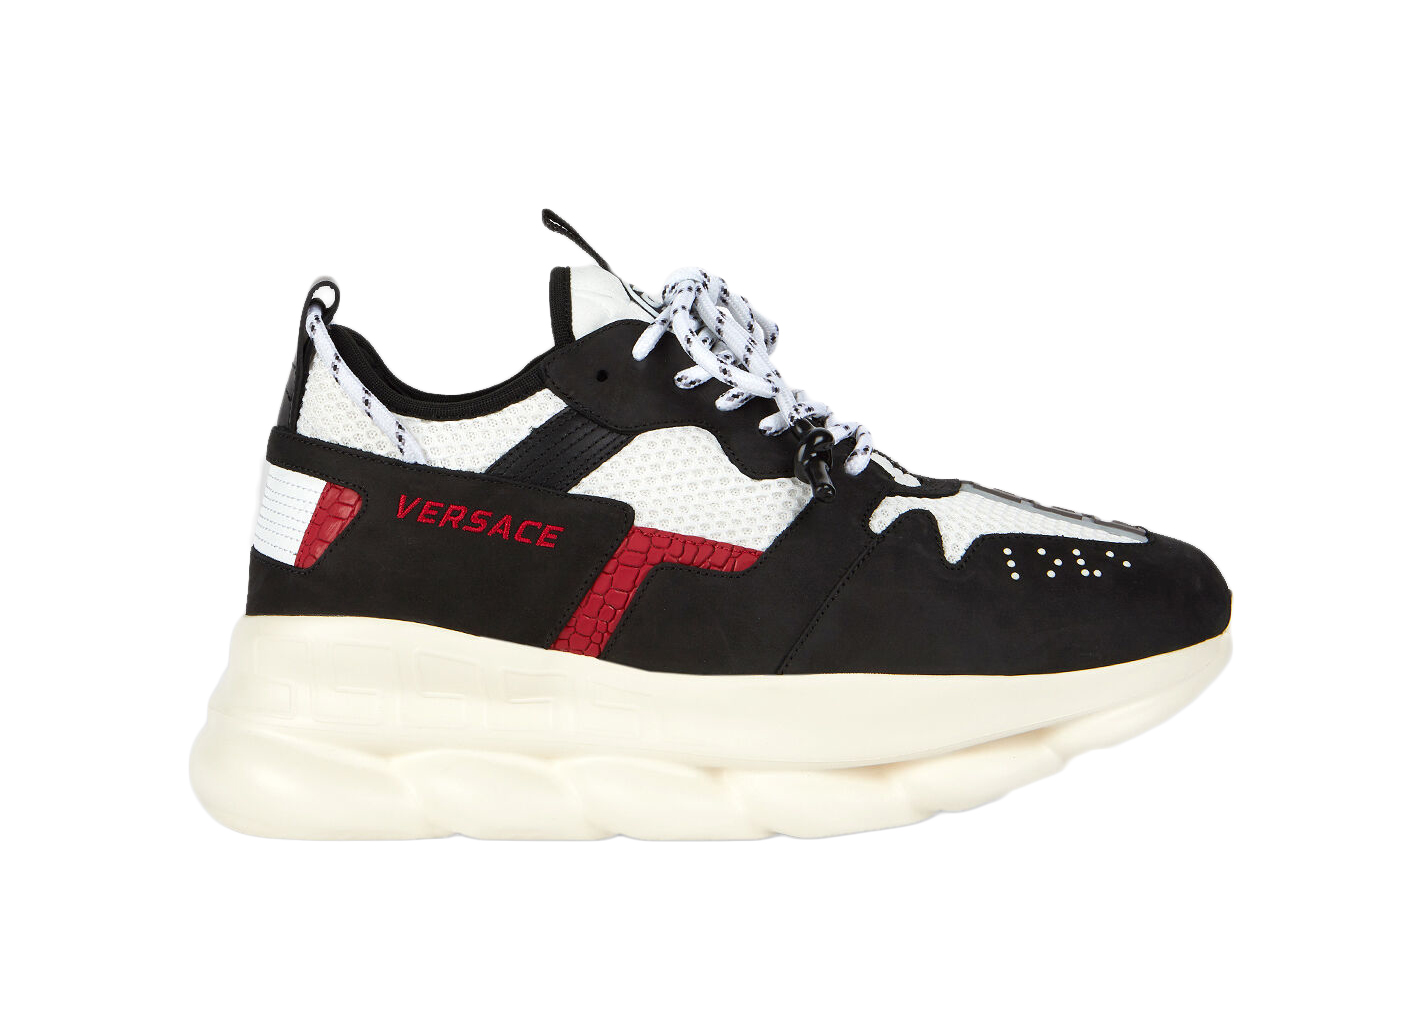 Versace Chain Reaction 2 Black Red